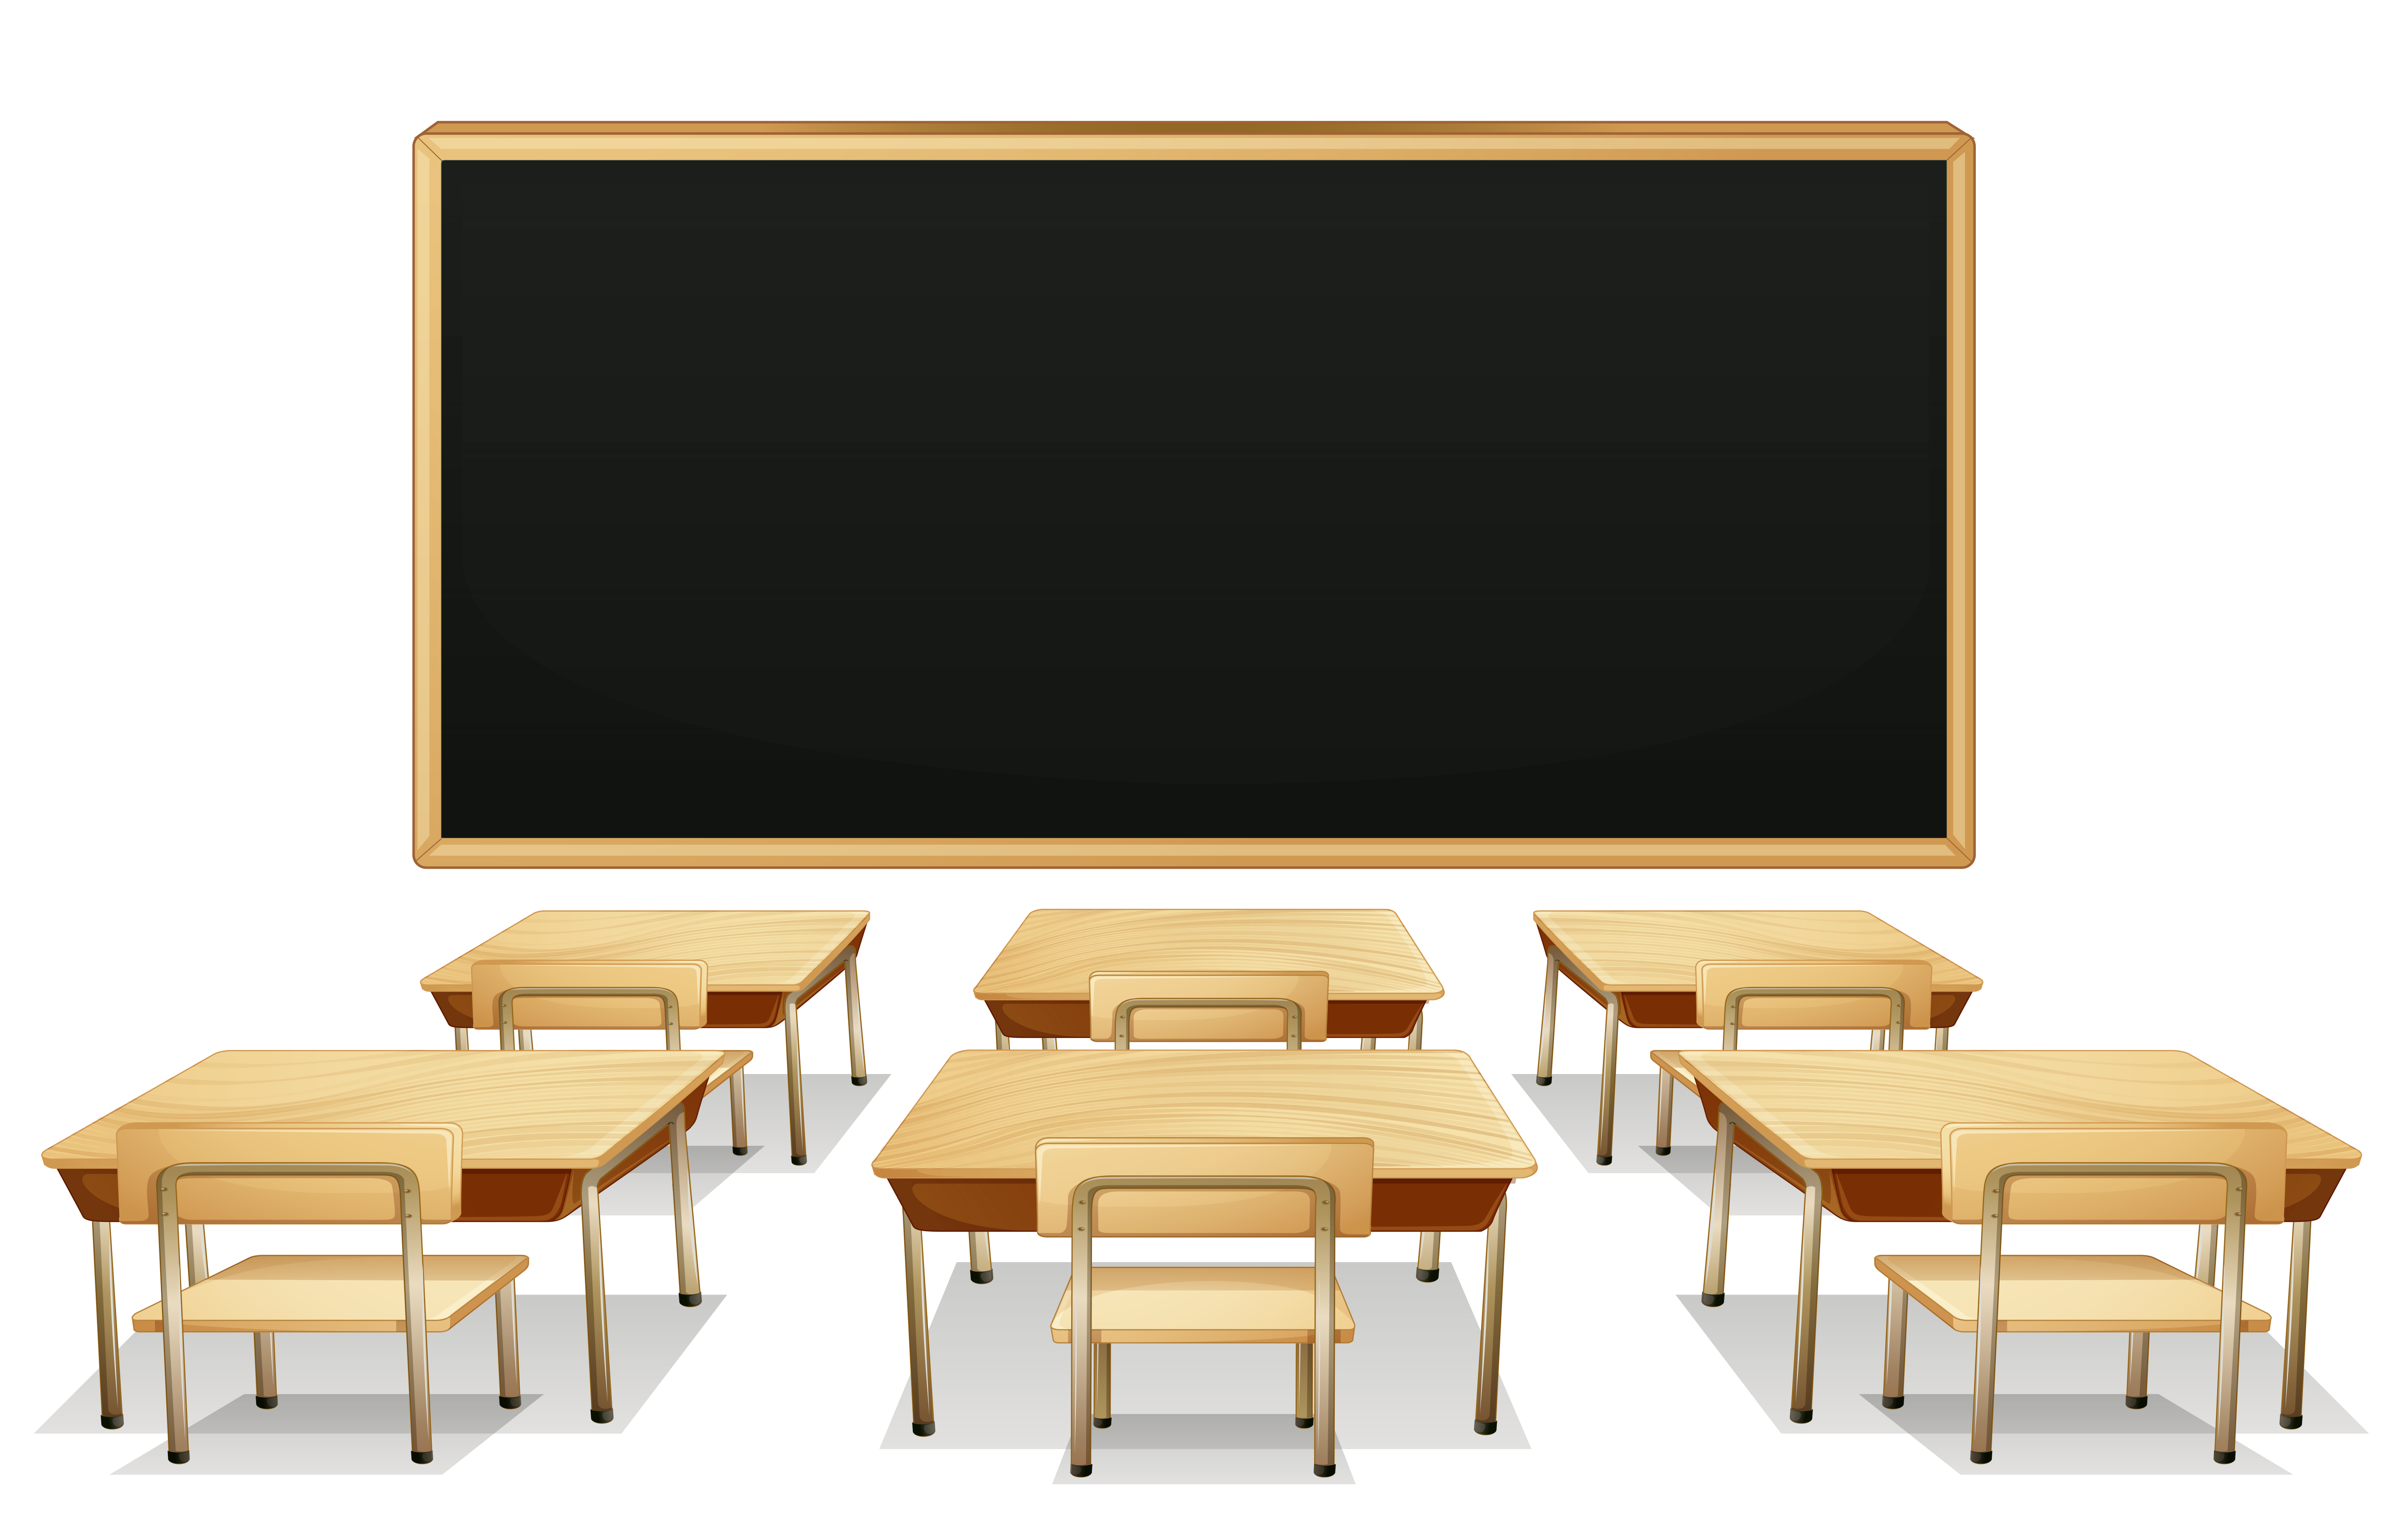 School tables clipart image library download School Classroom with Blackboard and Desks PNG Clipart Picture ... image library download